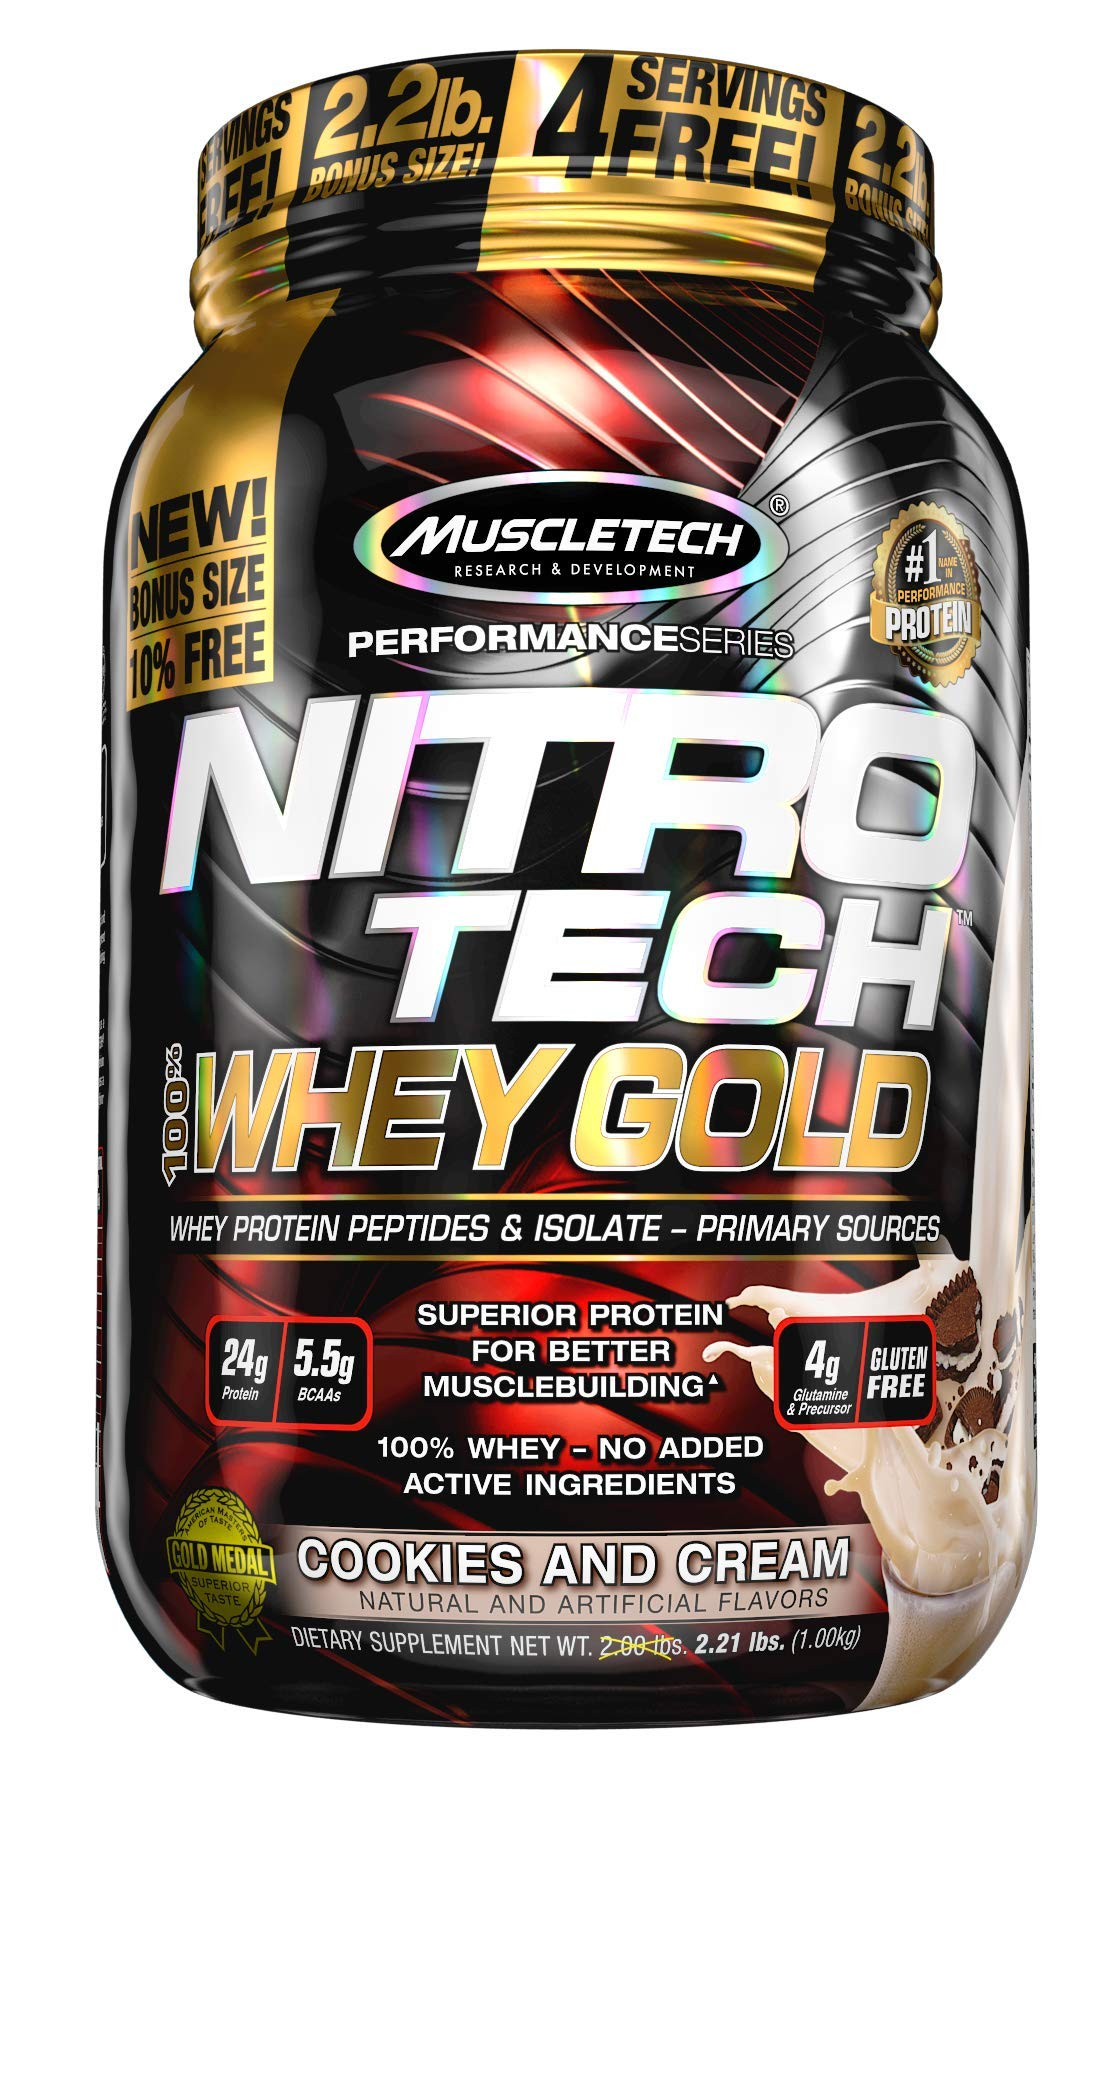 Mua MuscleTech Nitro-Tech Whey Gold Protein Powder, Whey Isolate and  Peptides, 24 Grams Protein, 5.5 Grams BCAAs, Easy to Mix, Tastes Great,  Gluten-Free, Cookies and Cream, 2.2 Pounds (31 Servings) trên Amazon